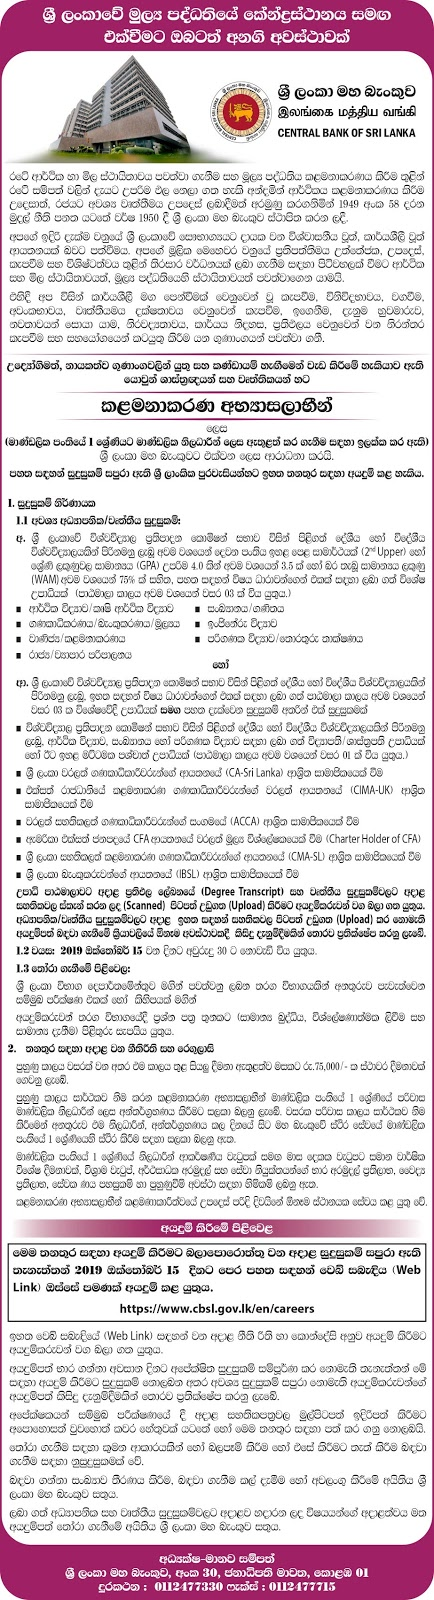 management trainee vacancies central bank sri lanka